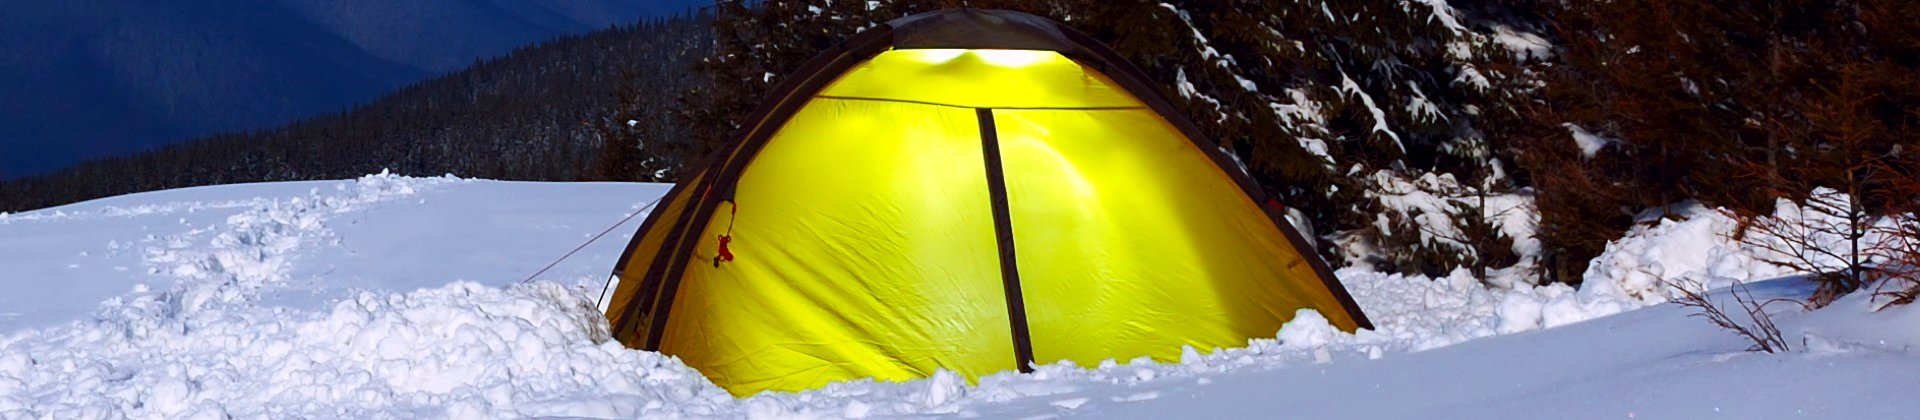 Best Cold Weather Tents Reviewed in Detail